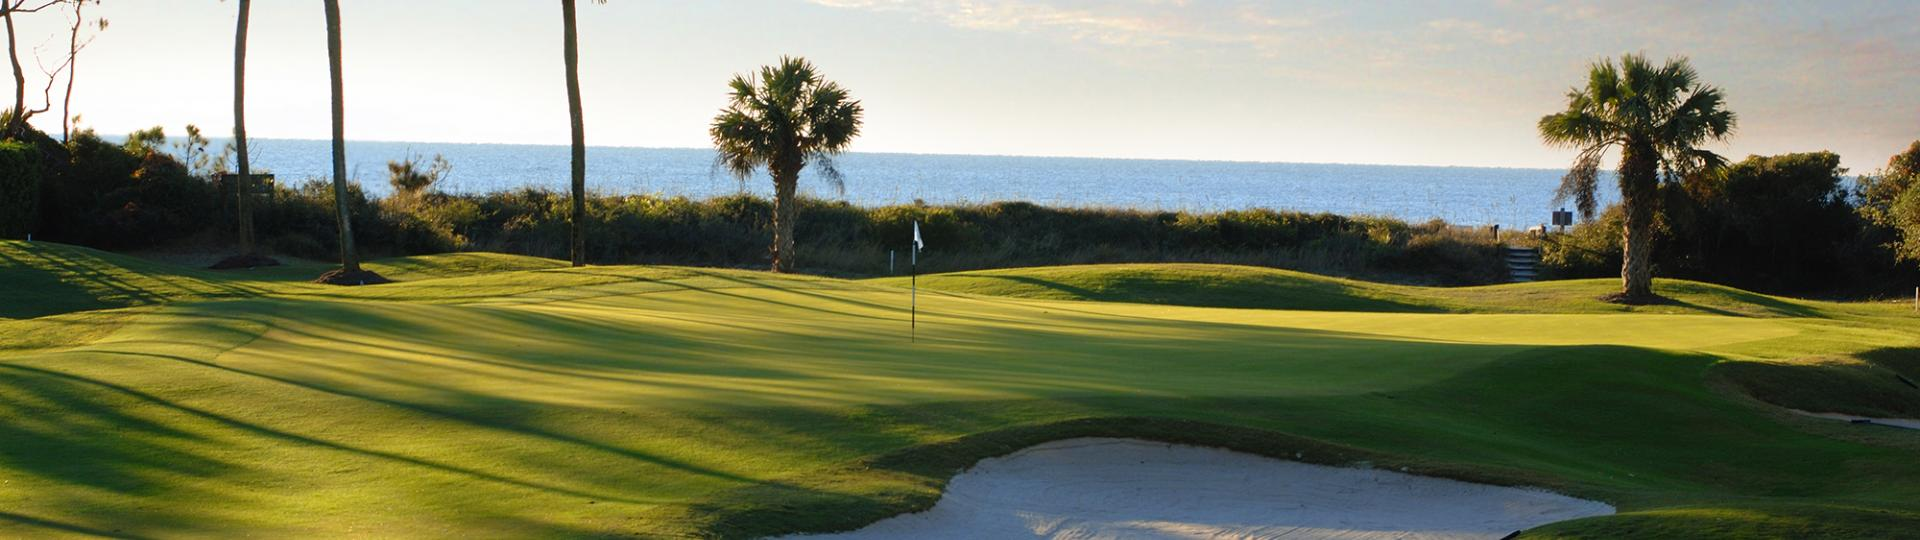 Sea Pines Golf Course on Hilton Head Island, SC